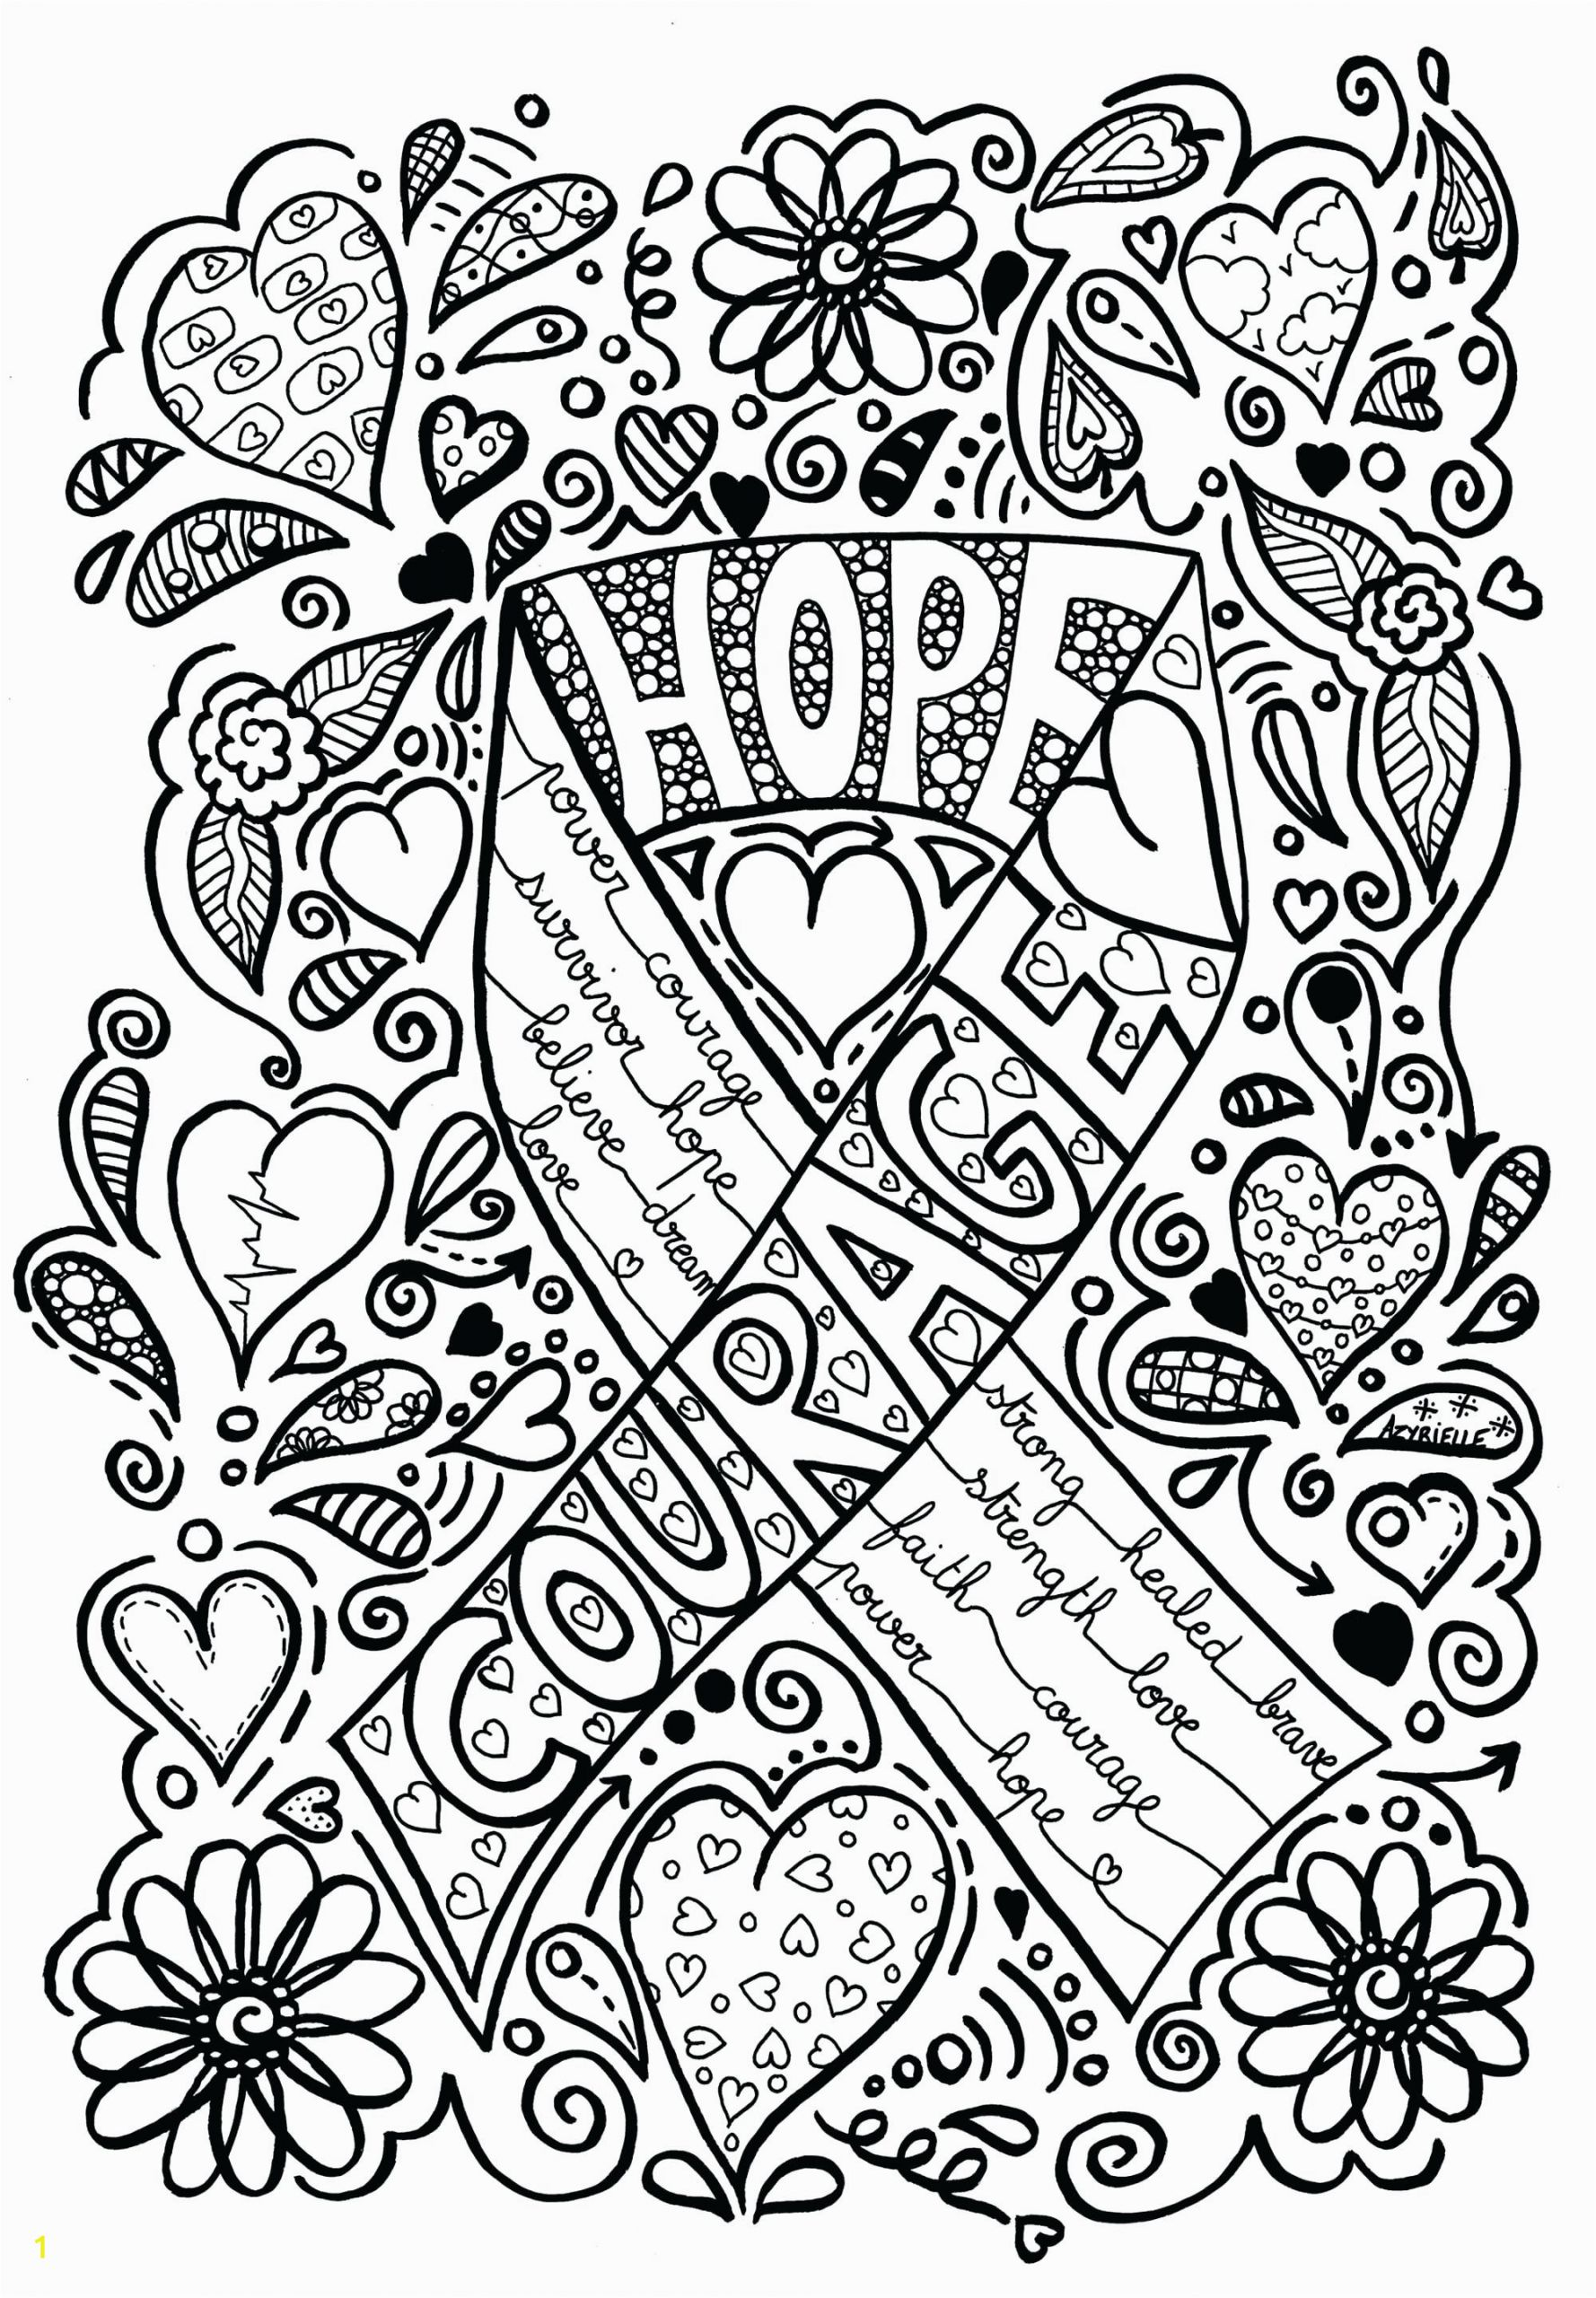 Breast Cancer Coloring Pages Printable Breast Cancer Ribbon Coloring Sheet – Champprint